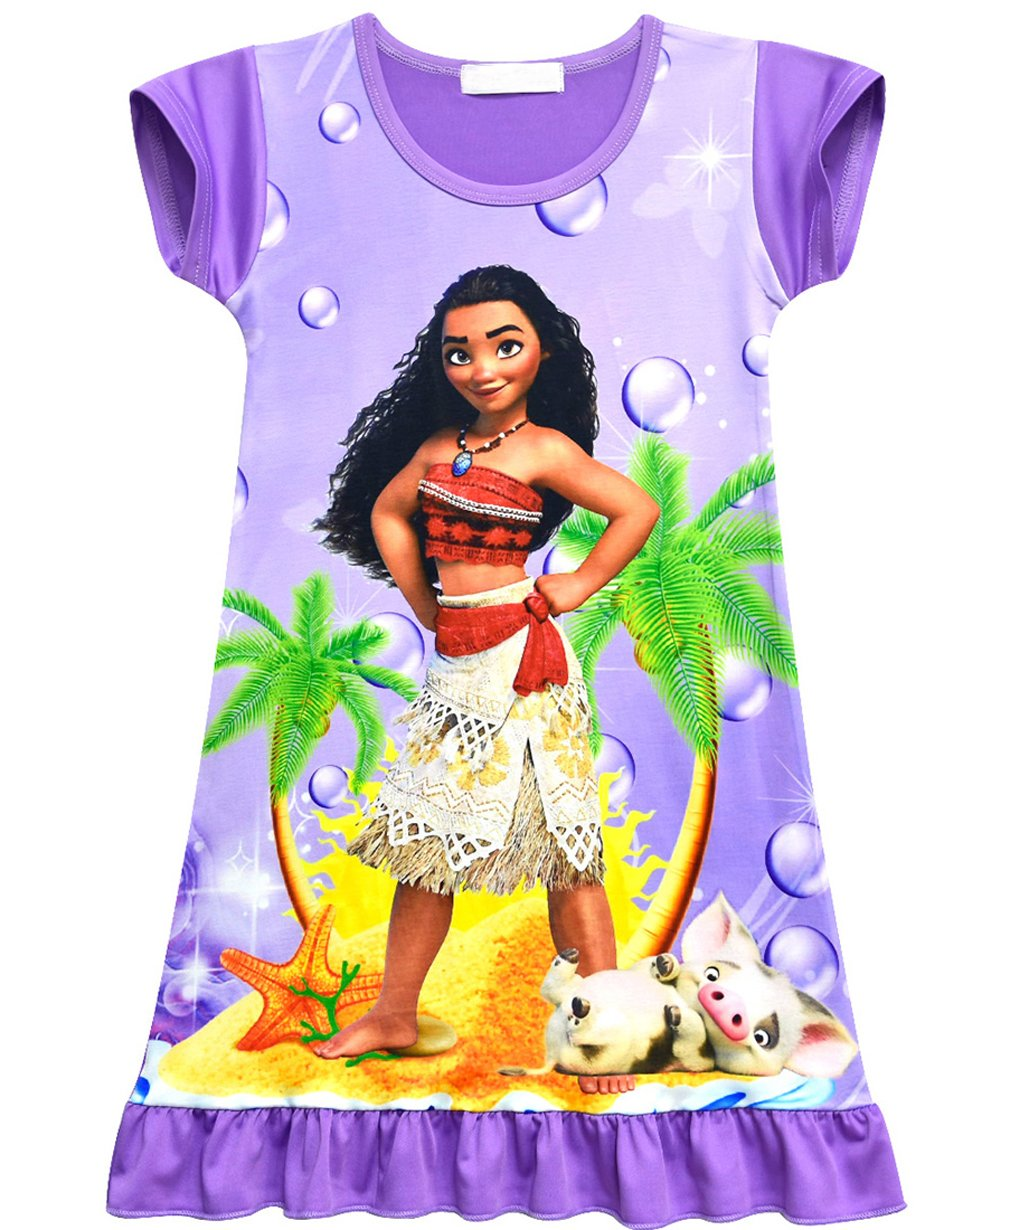 ZHBNN Moana Girls Nightgown Cartoon Pajamas Princess Dress(Purple,110/4-5Y) by ZHBNN (Image #1)